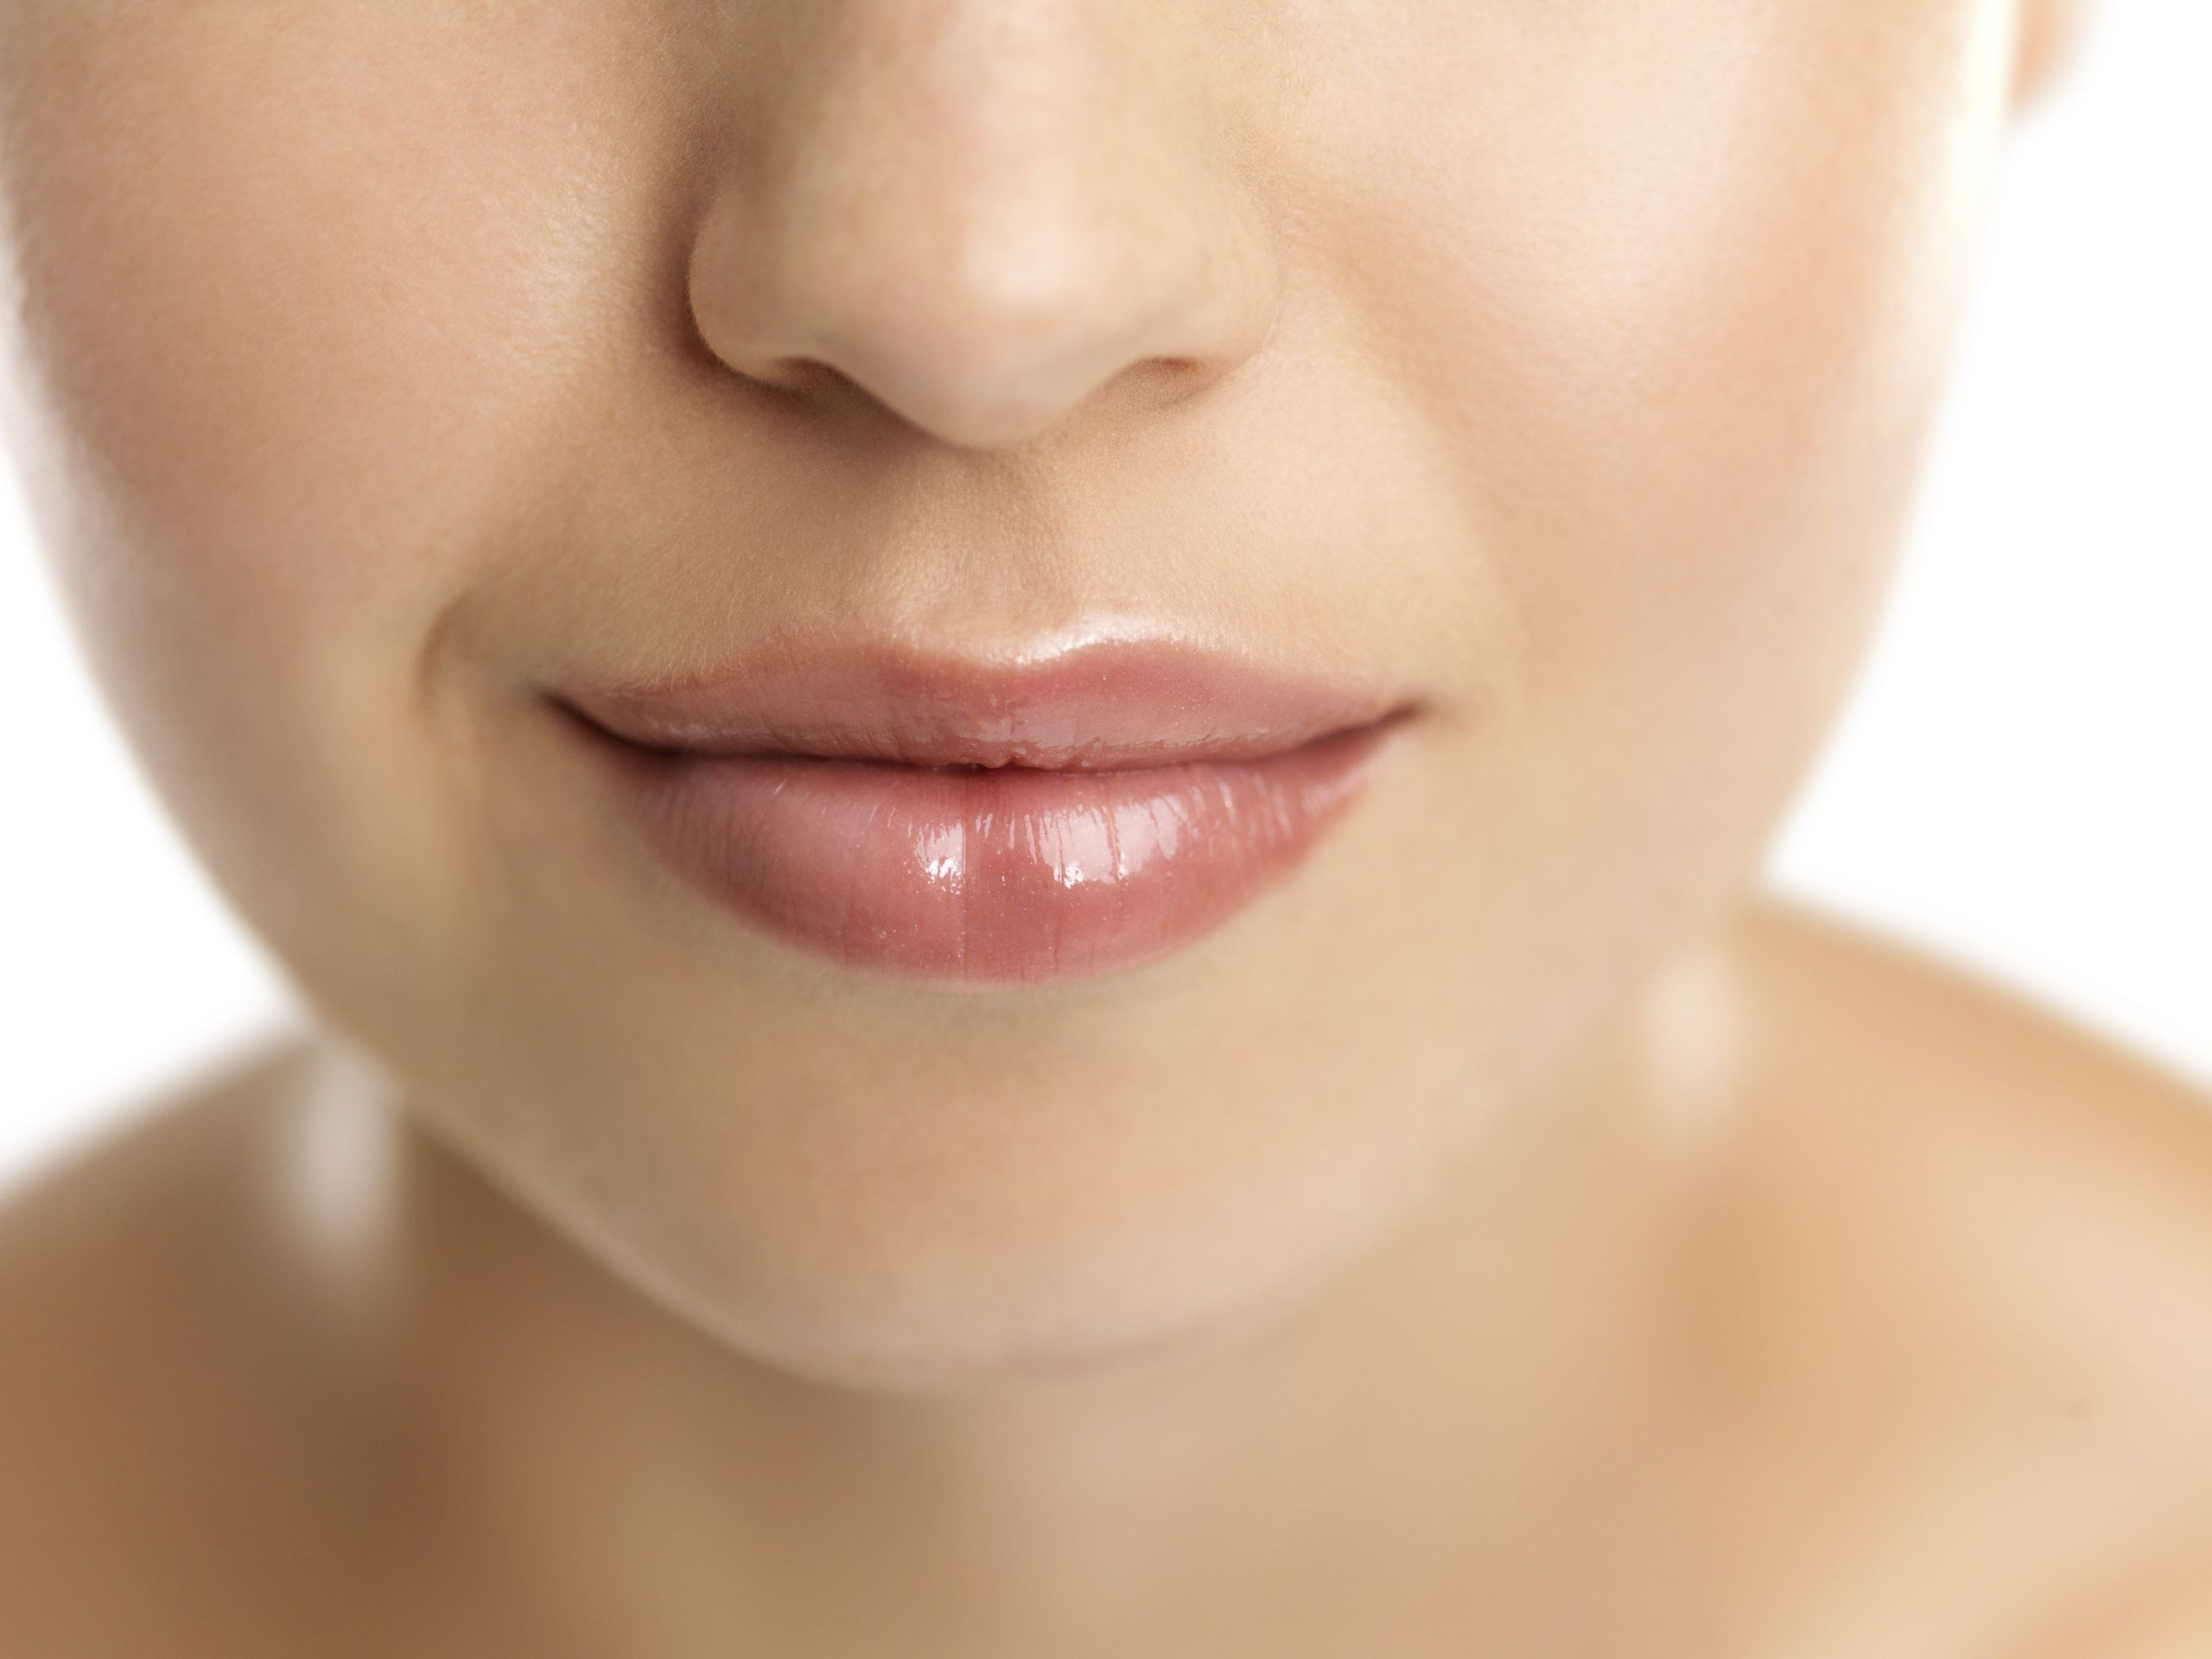 Woman with smooth, firm skin on the mid and lower face